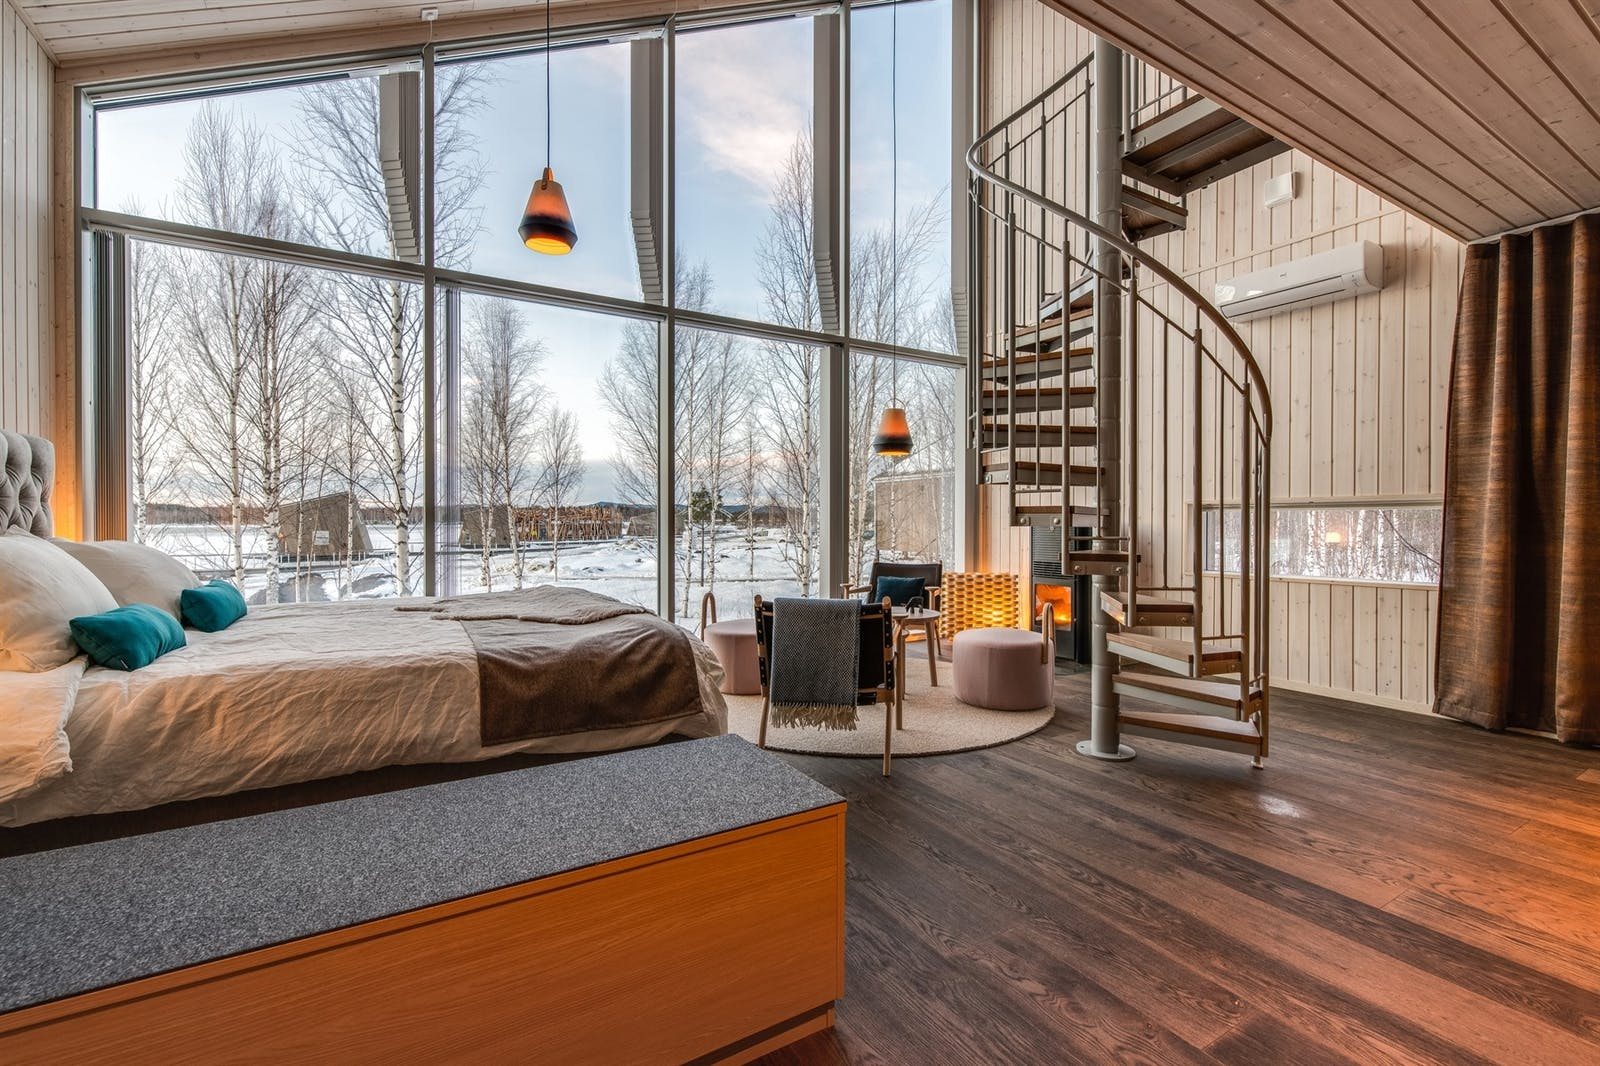 Land Cabin wth spiral staircase leading to a loft, Arctic Bath, Sweden